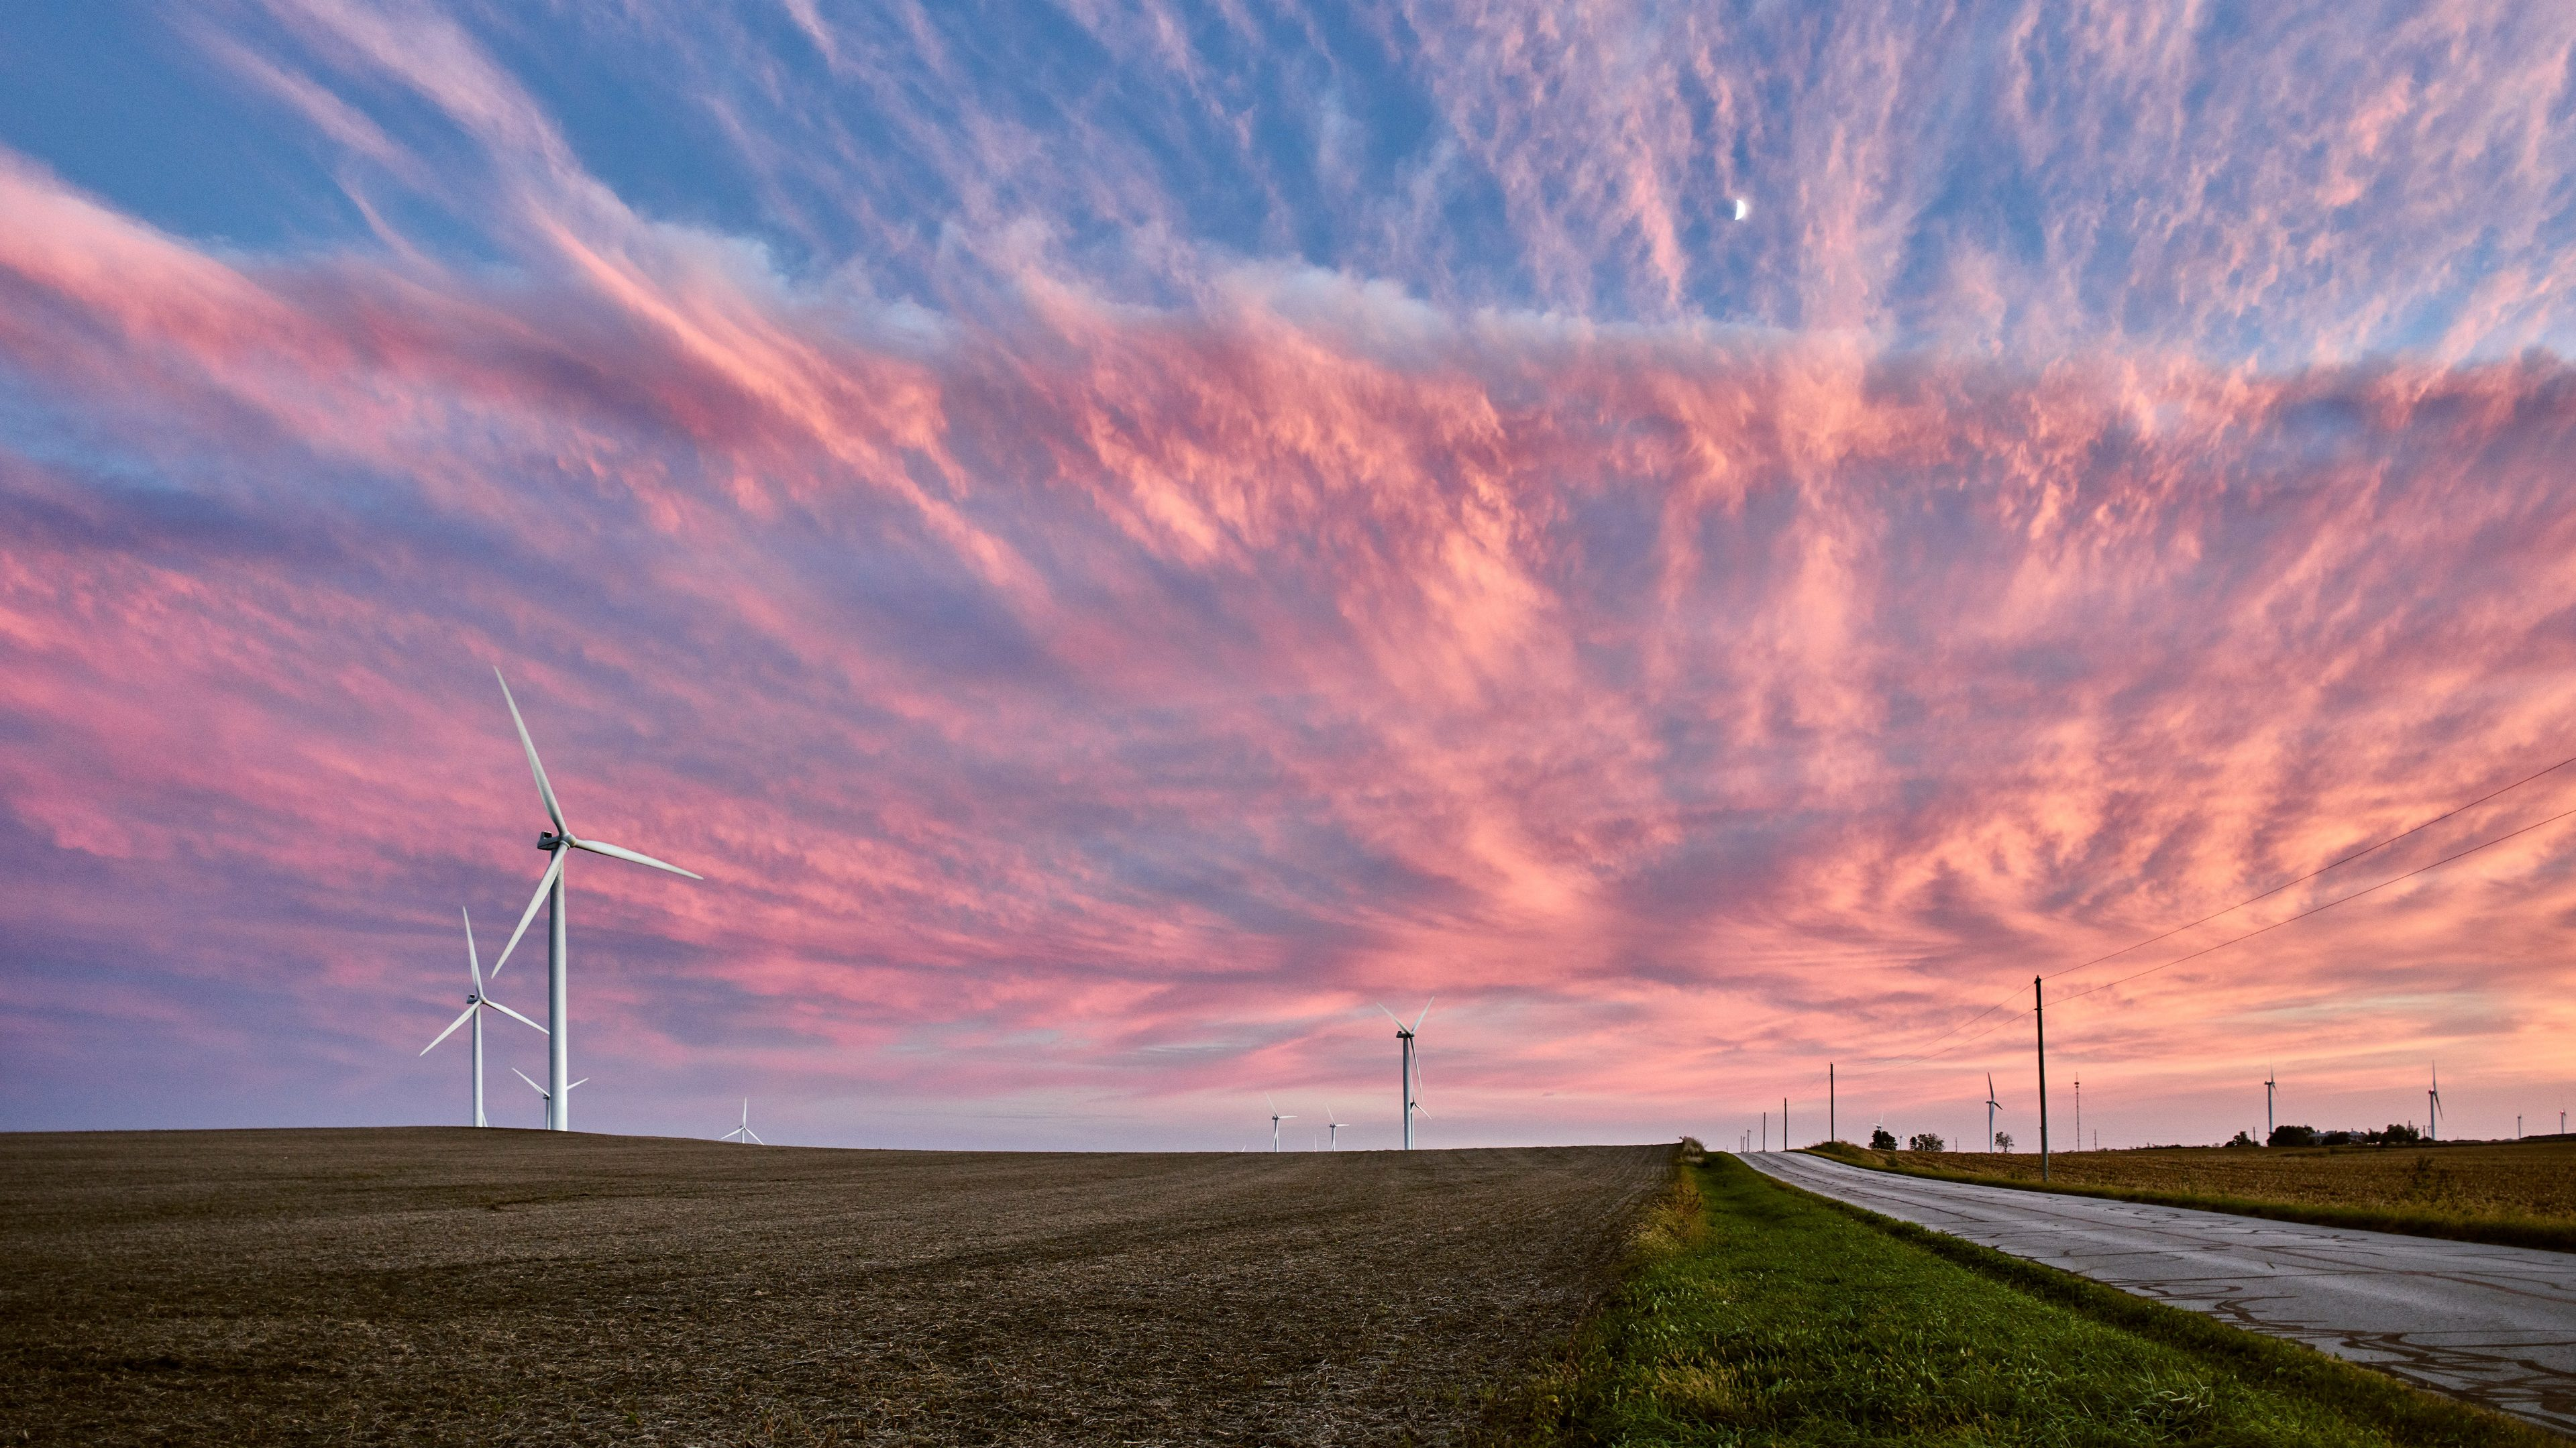 Sunrise, with wind turbines